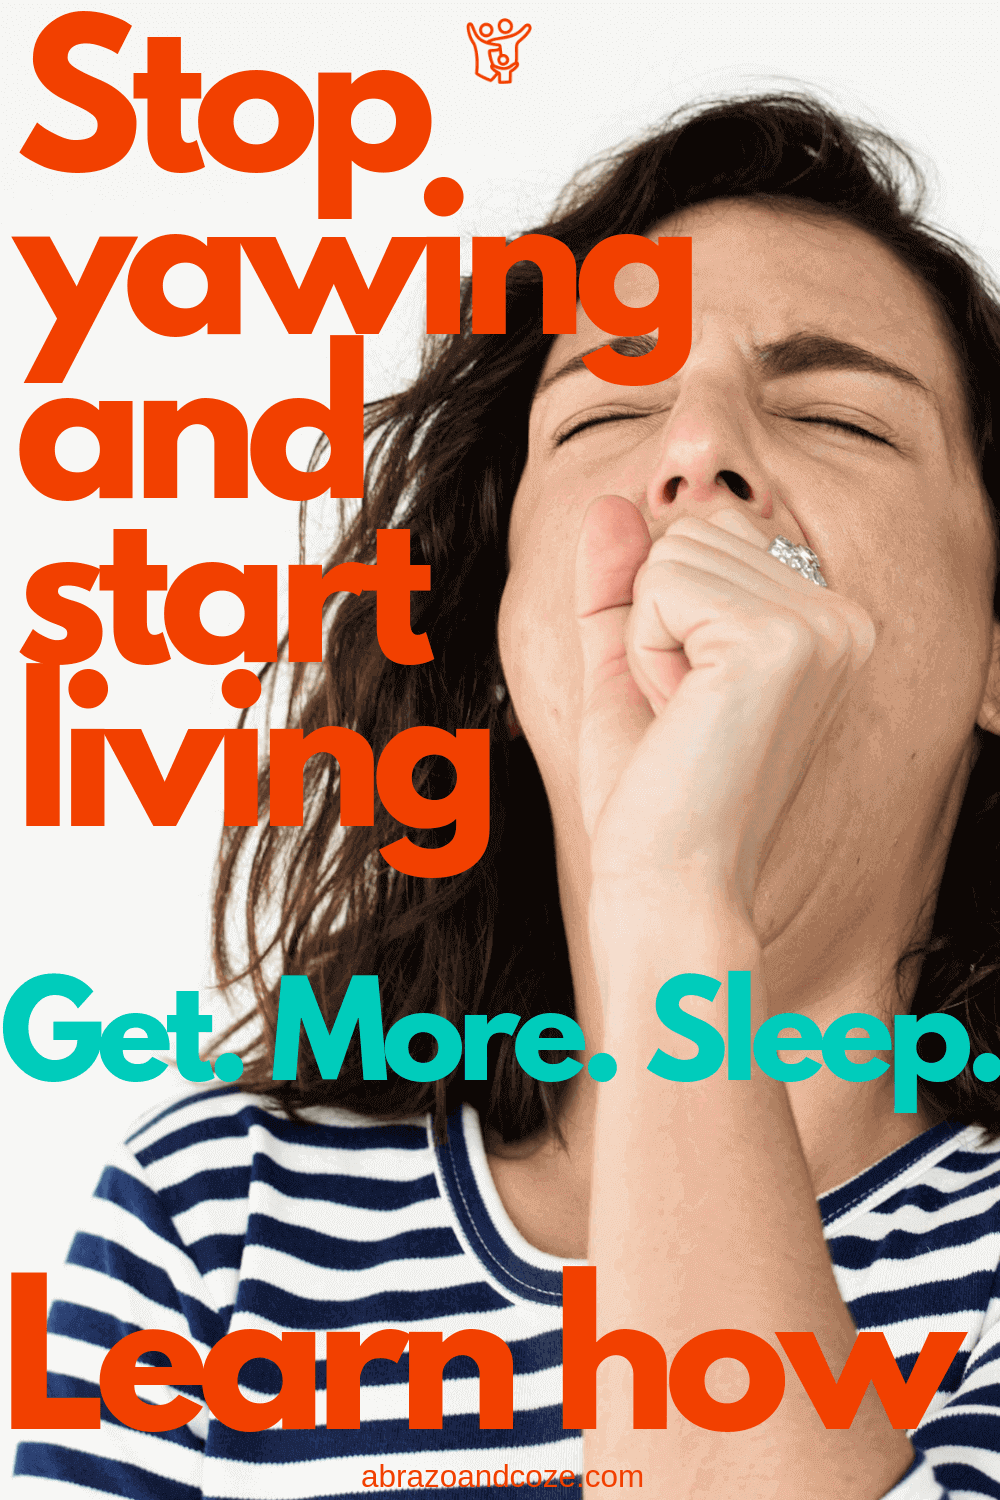 Stop yawning and start living. Get. More. Sleep. Learn how. If you never seem to get to bed early enough, or your children are hard to get into bed you're going to want to start following evening routines for everyone.